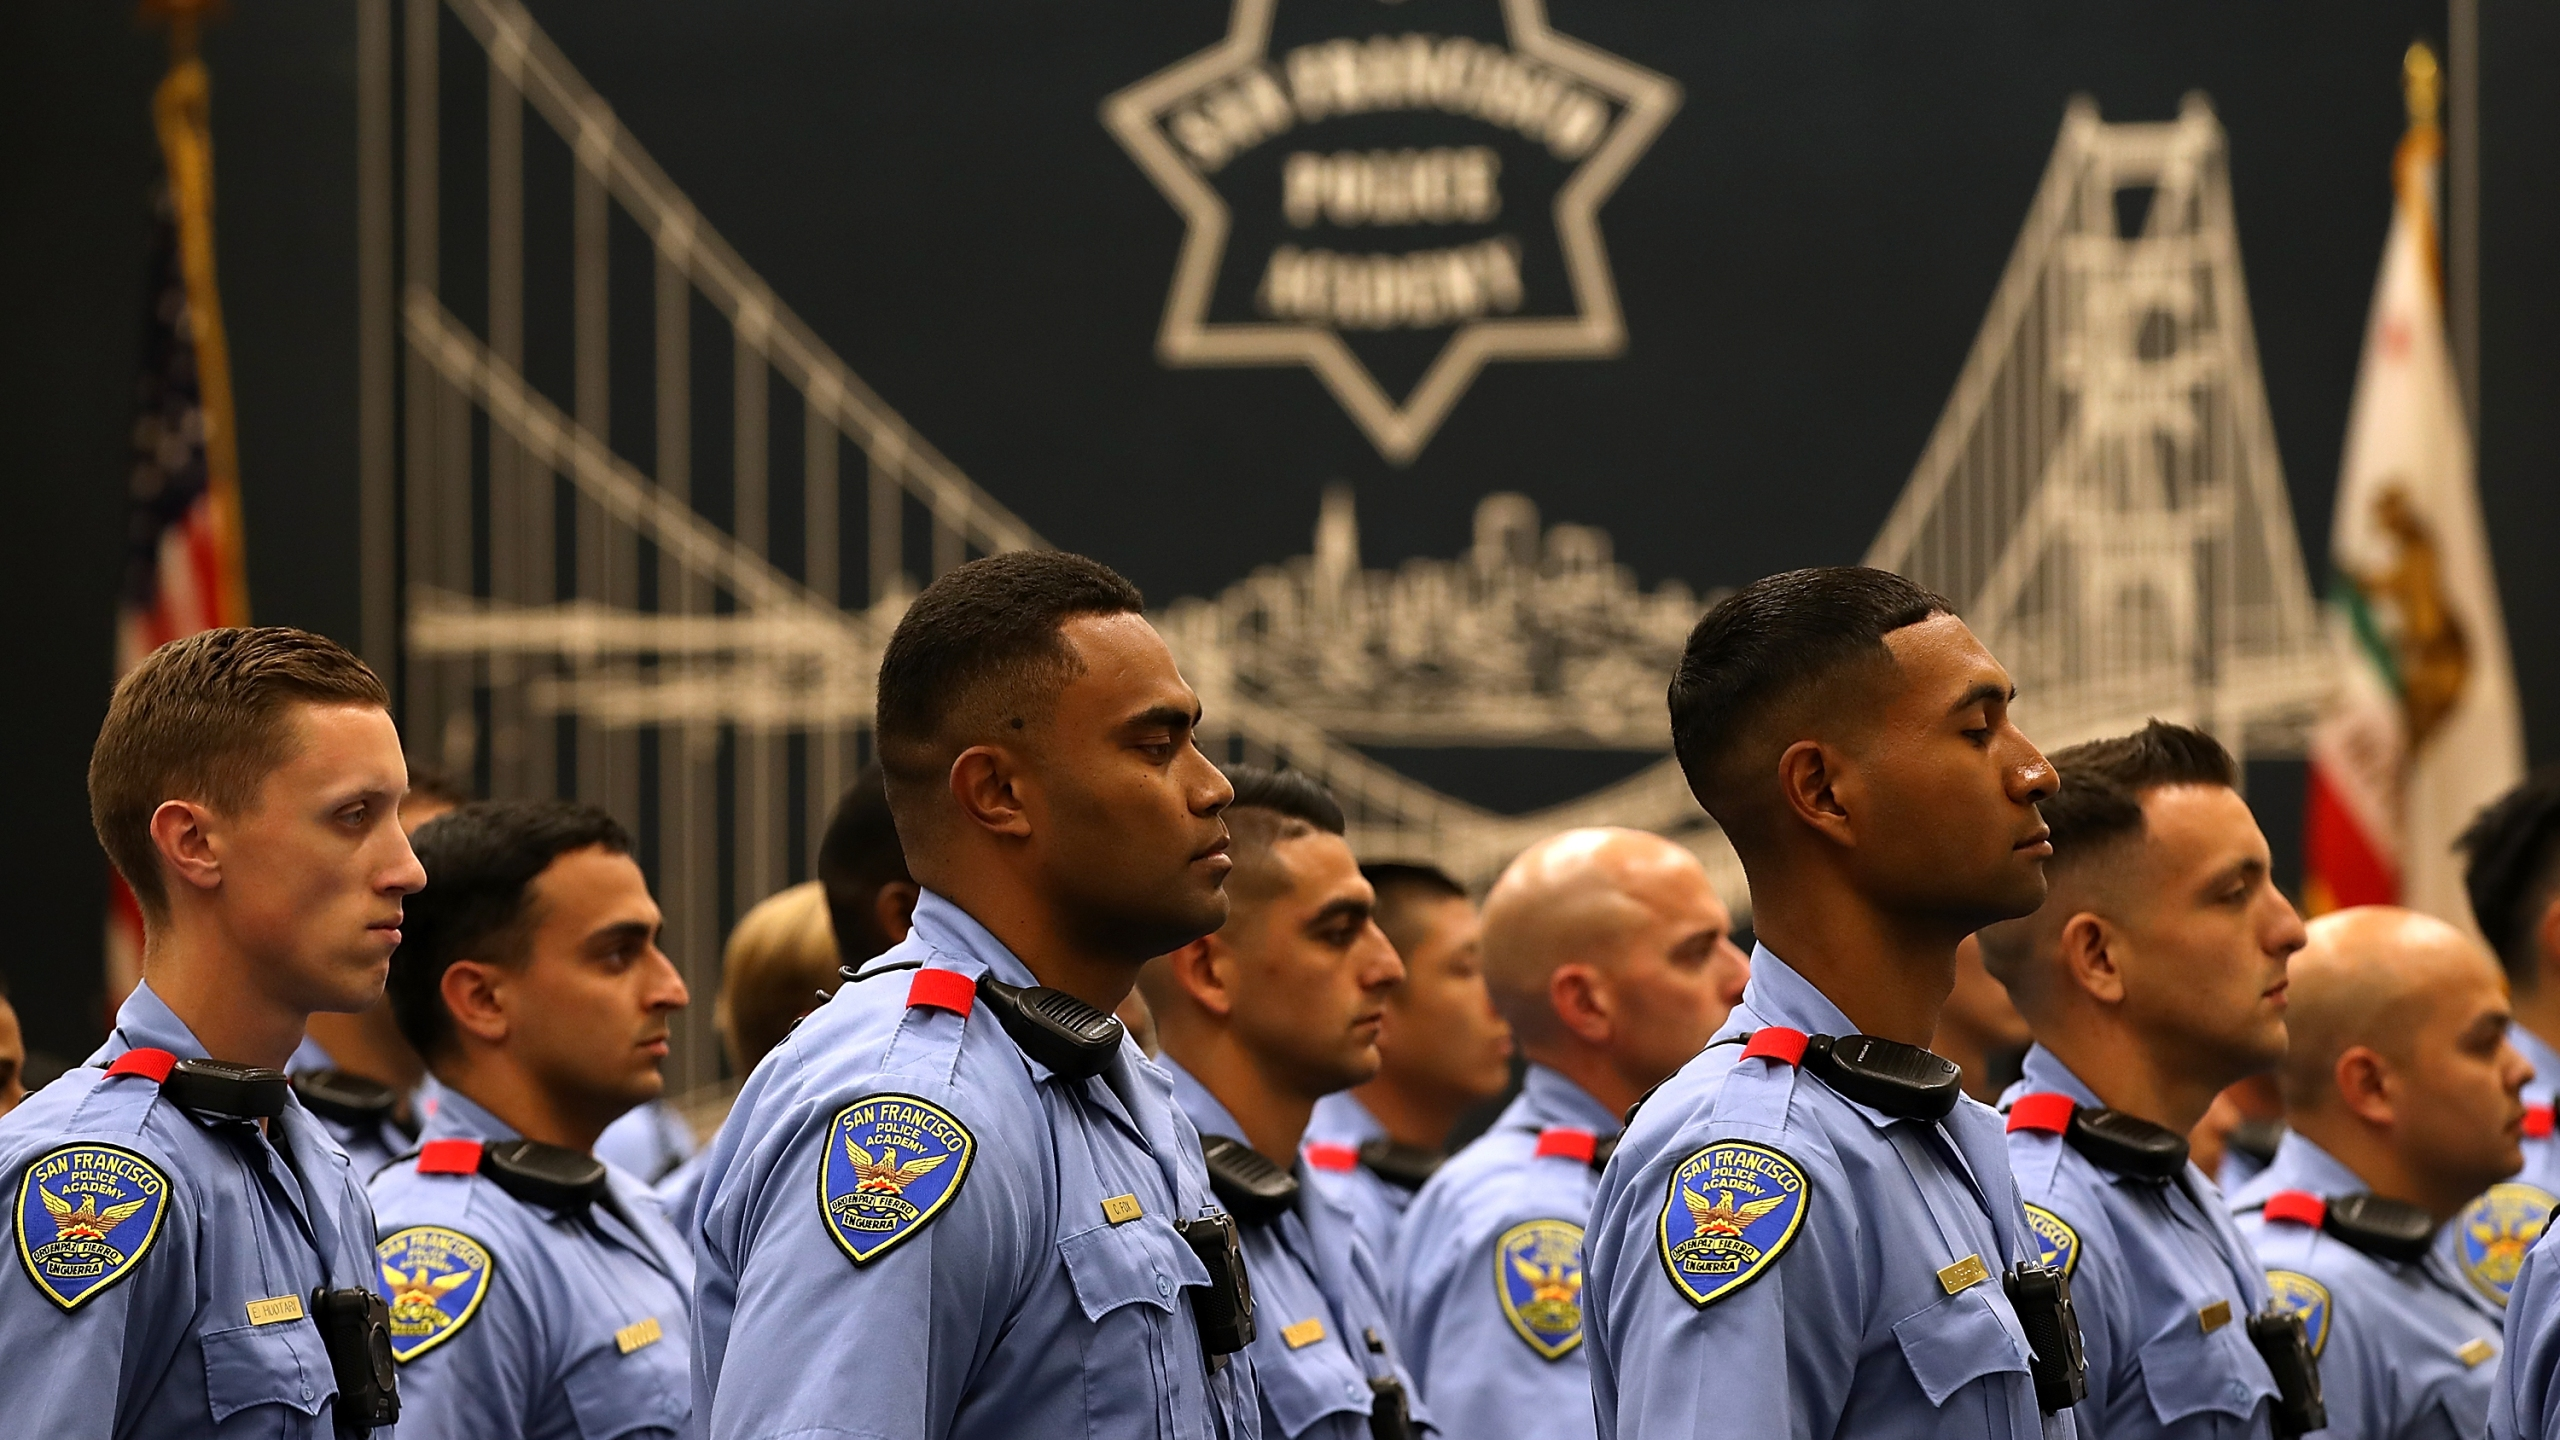 San Francisco police recruits look on during a news conference at the San Francisco Police Academy on May 15, 2018, in San Francisco. (Justin Sullivan/Getty Images)